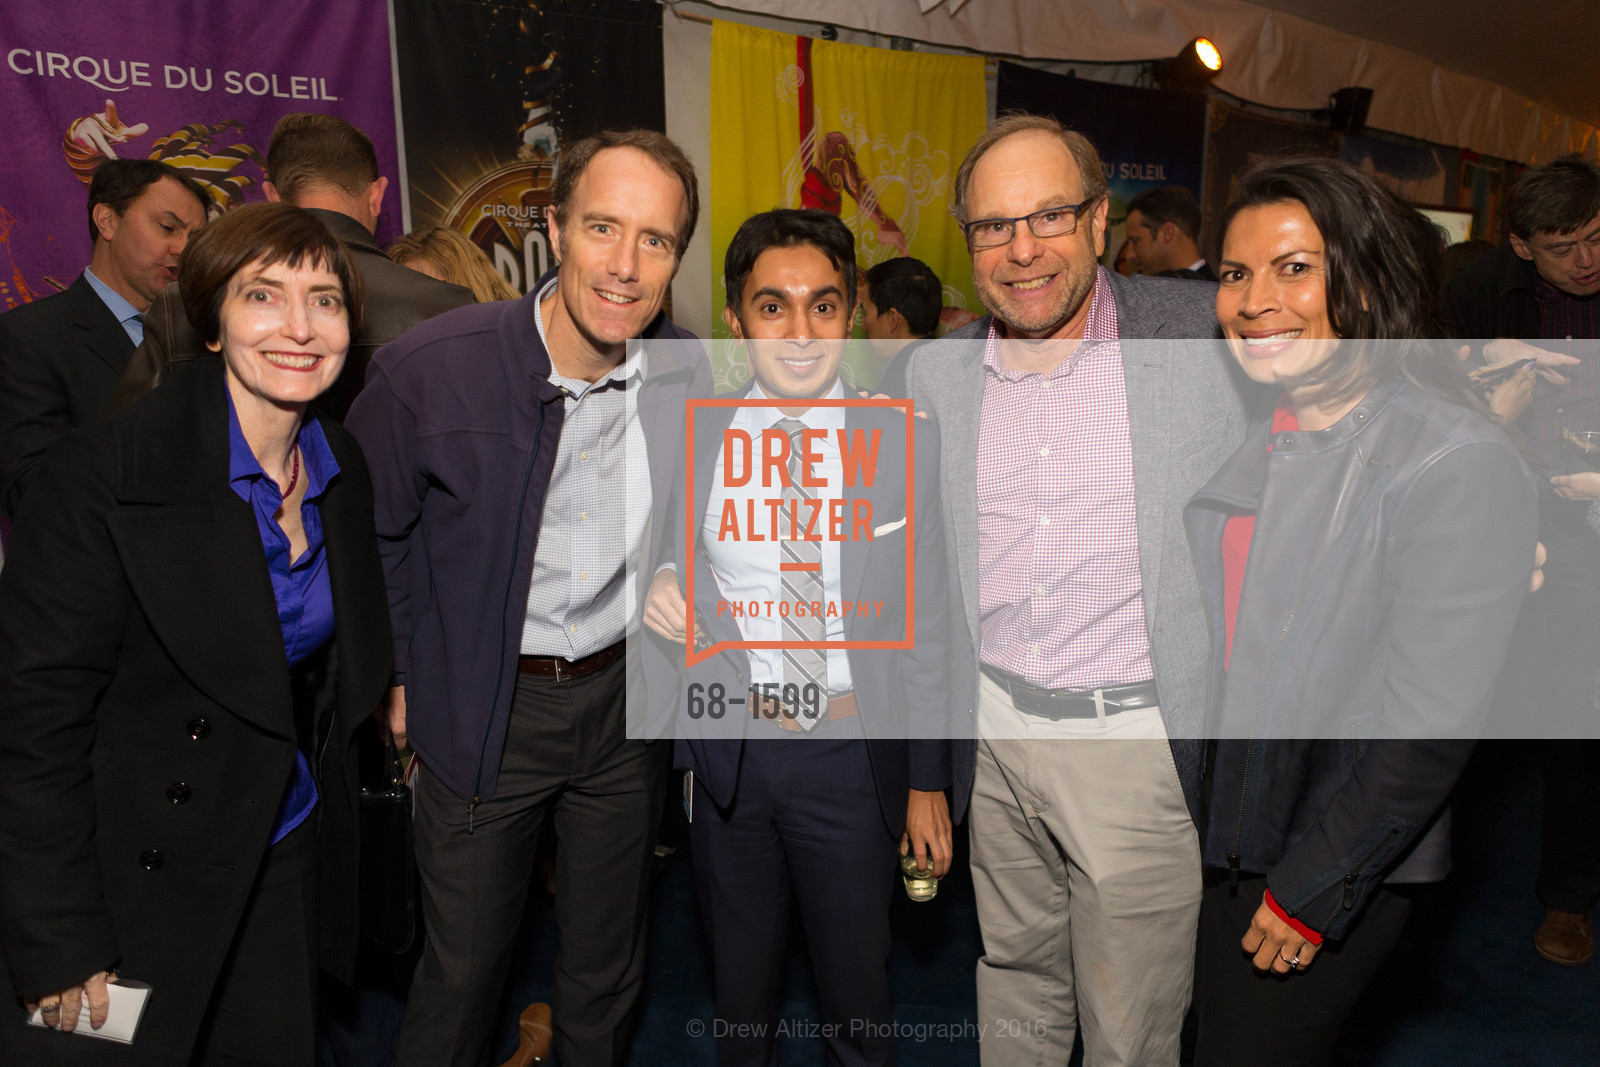 Peggy Powers, Chris Newman, William Edwin, Mark Steiner, Jackie Haggarty, Photo #68-1599